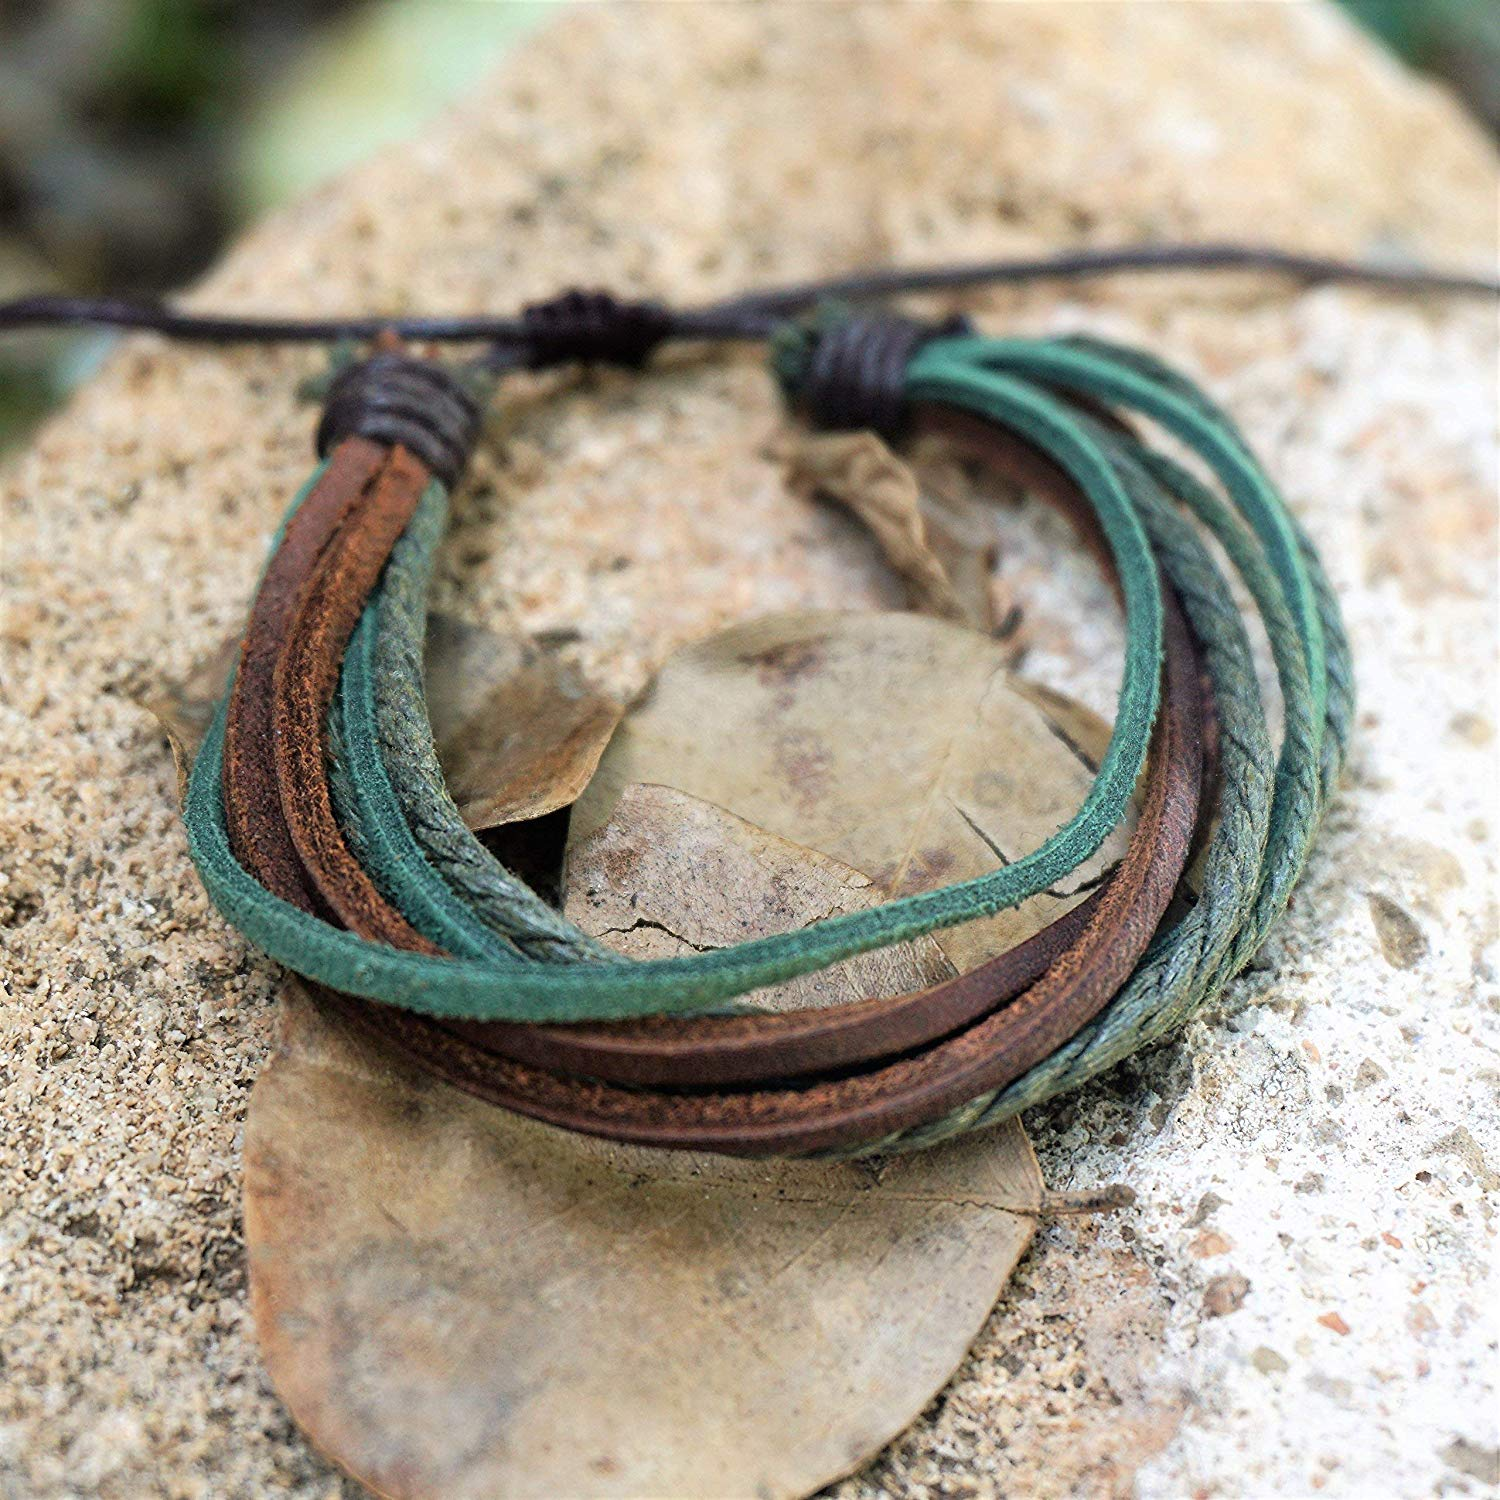 BARBARI Jewelry Leather Cords Bracelet | Handmade Gift for Him and Her! High Quality Handmade Green and Brown Genuine Leather Wristband, Wrap Cords Bracelet